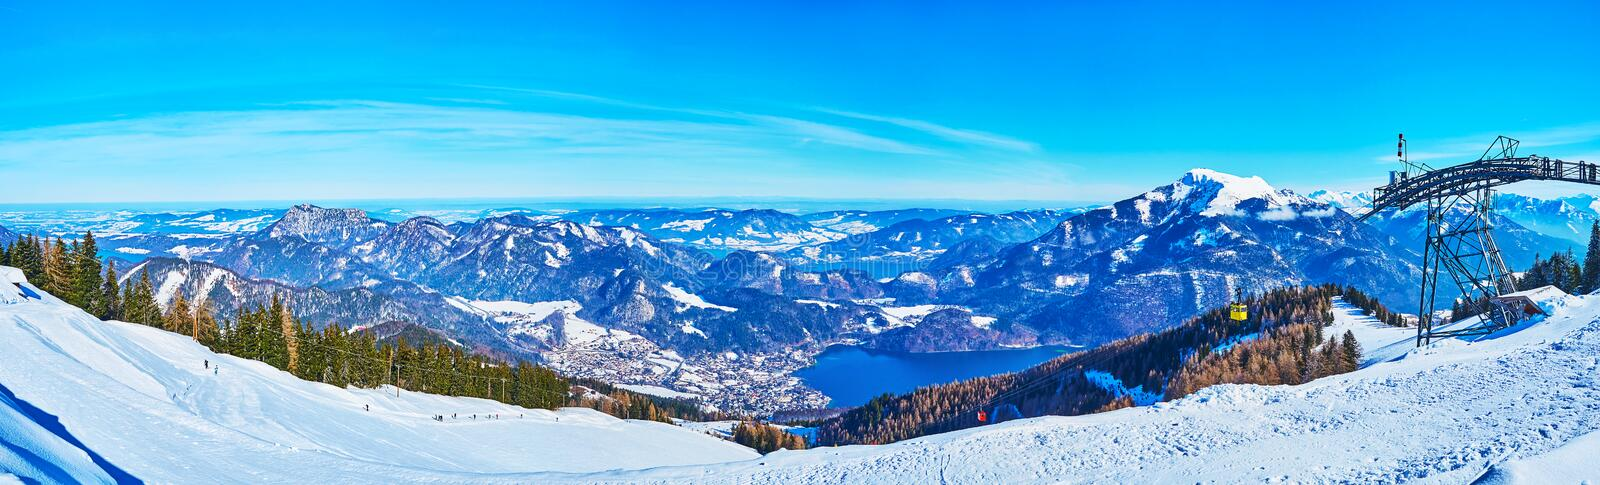 Panorama of Zwolferhorn mount and Wolfgangsee valley, St Gilden, Salzkammergut, Austria. Amazing winter panorama of Zwolferhorn mountain slopes, covered with ski royalty free stock image